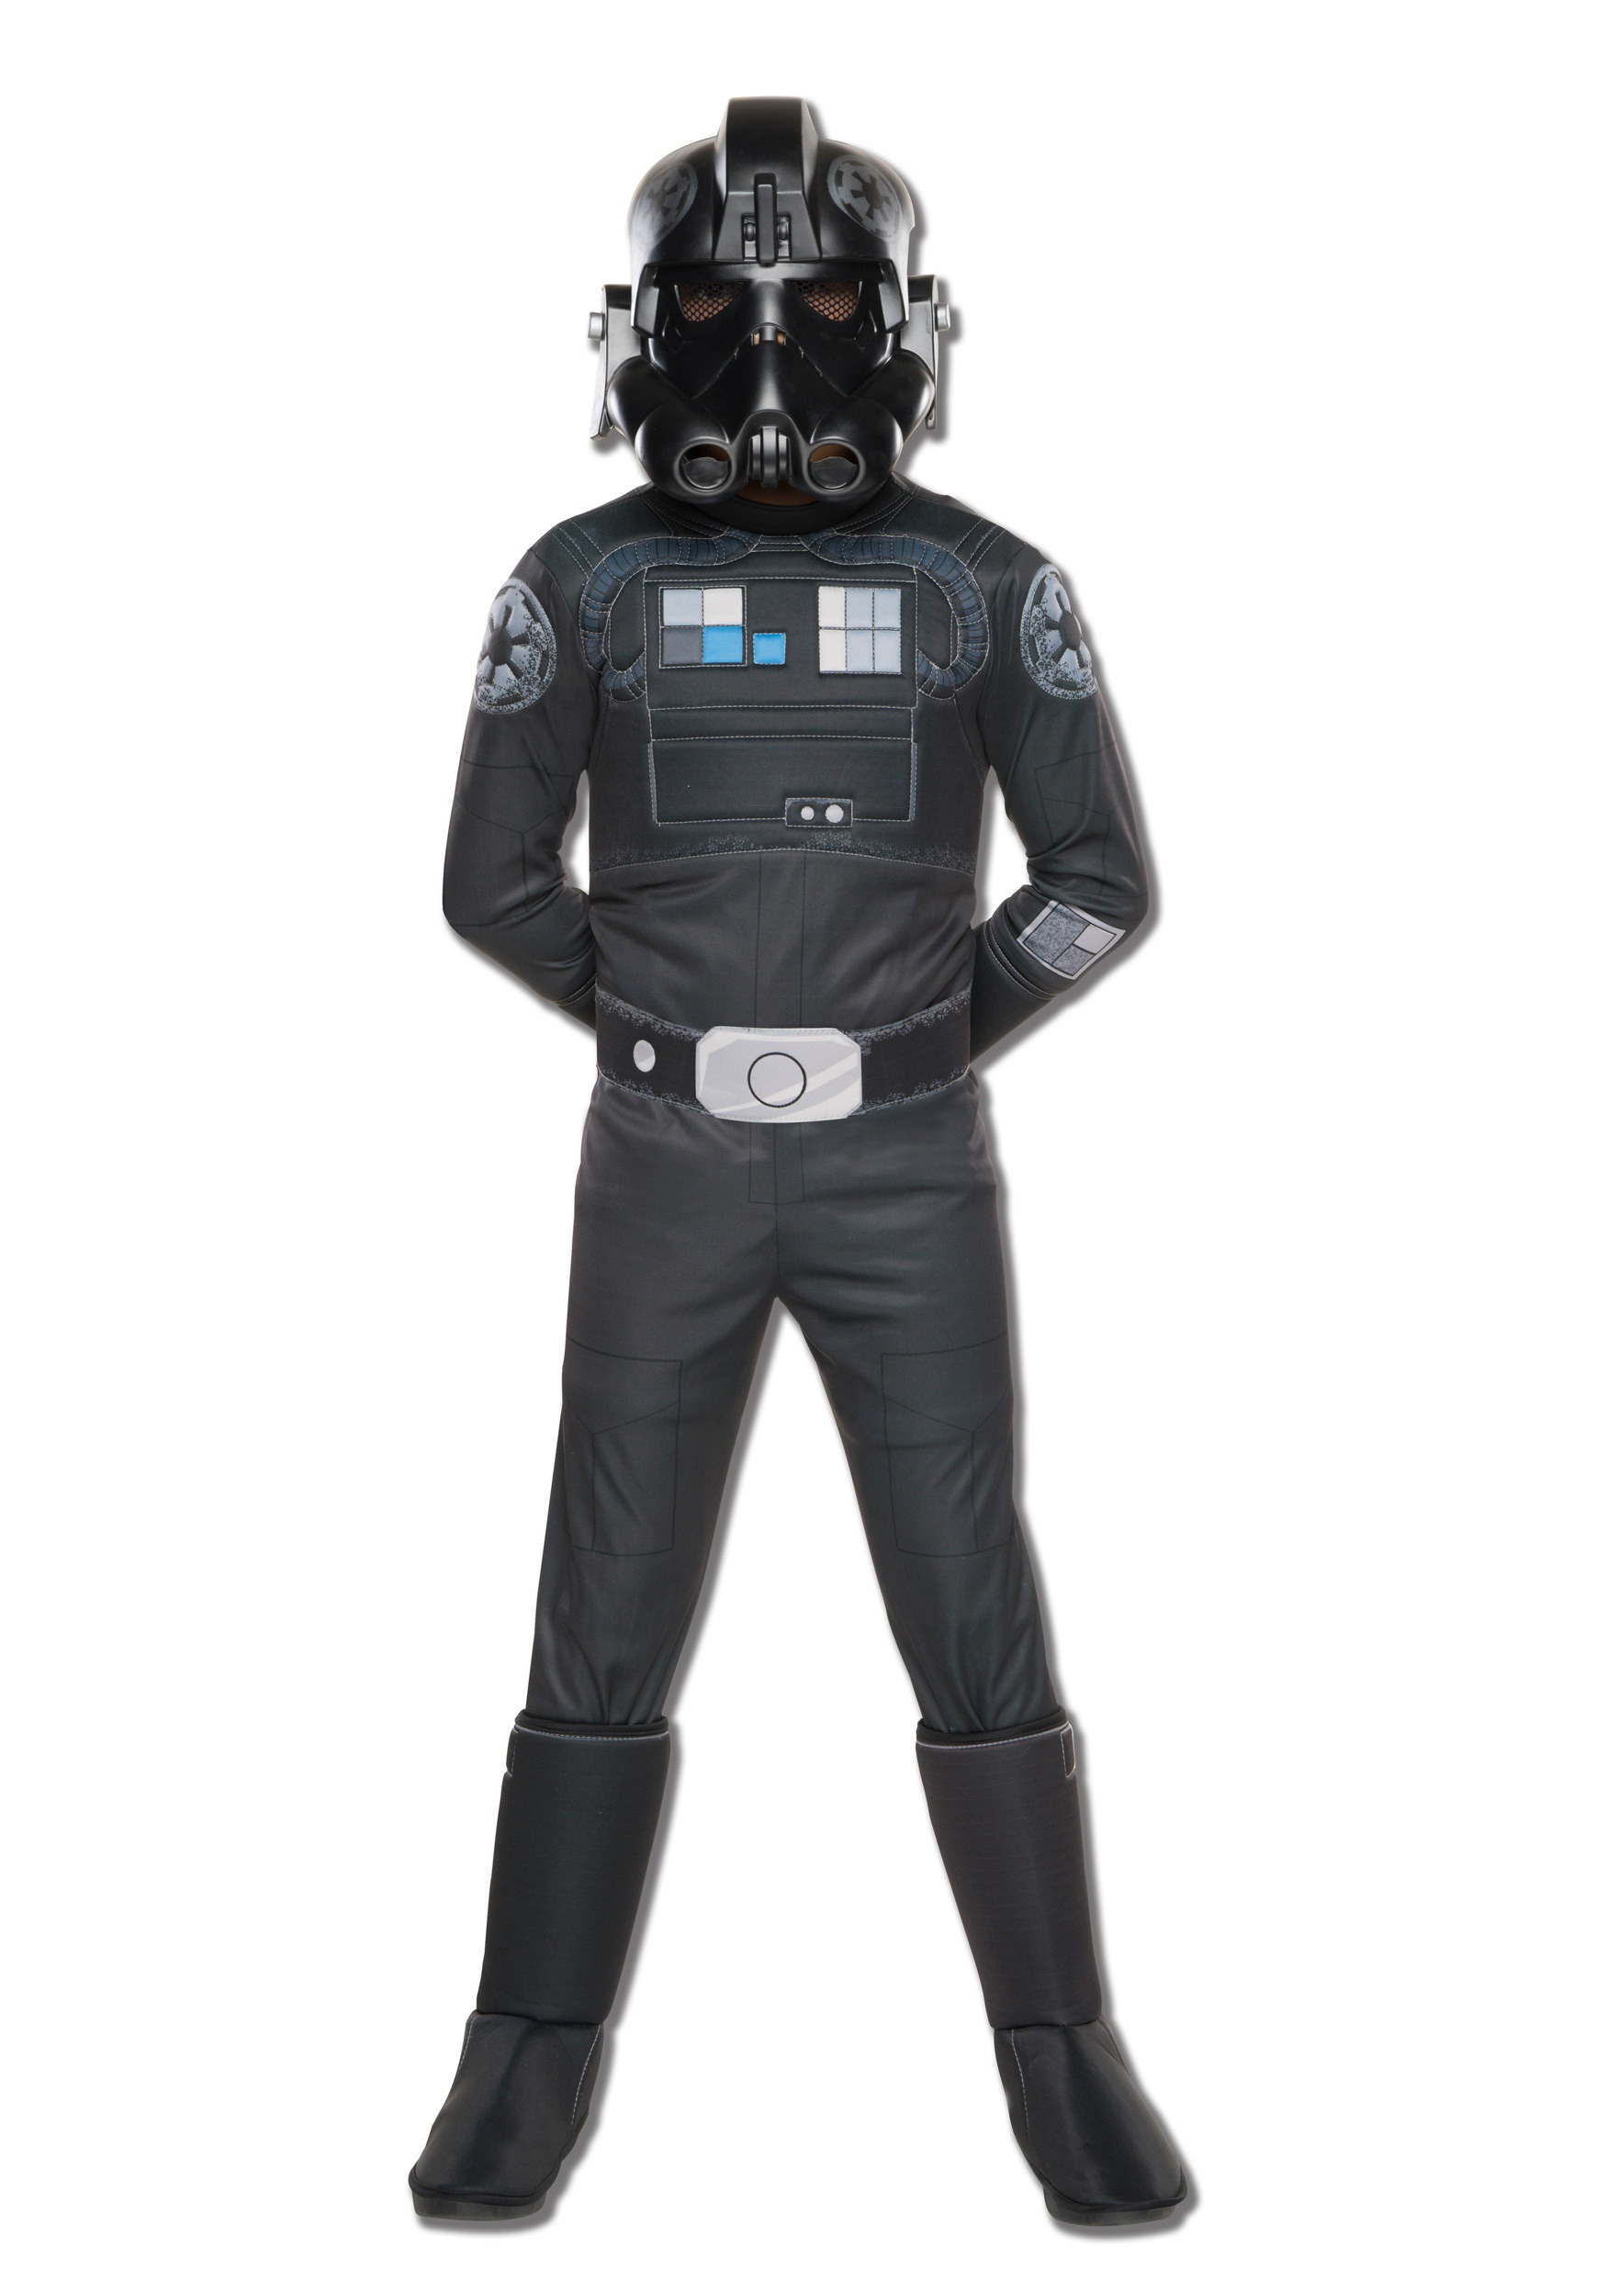 Tie Fighter Pilot Costume Tie Fighter Pilot Costume